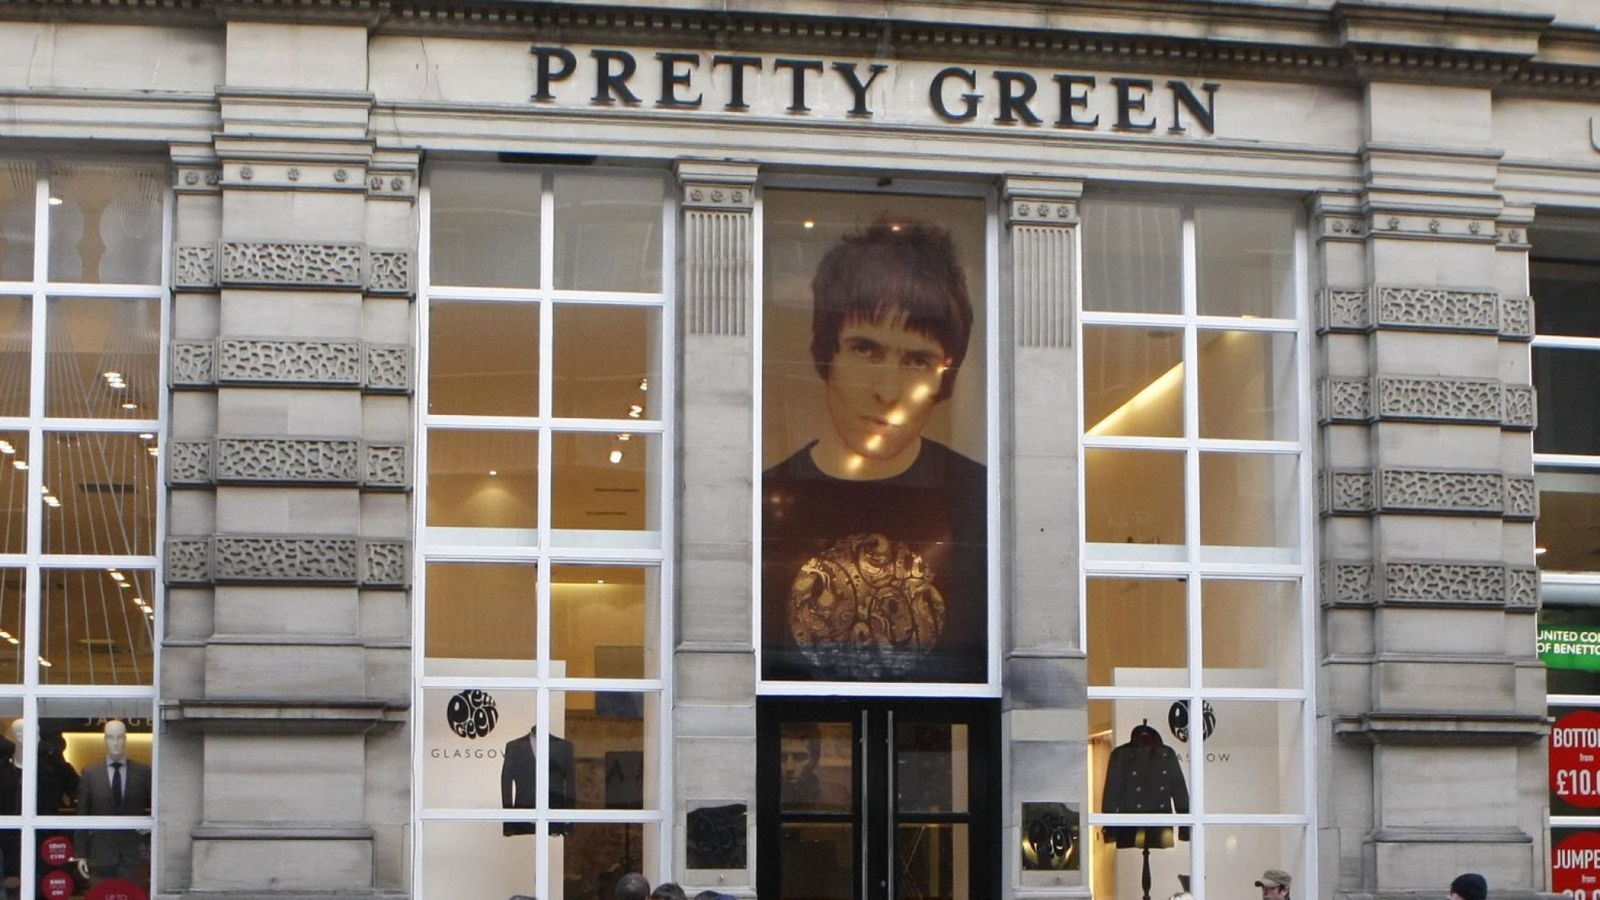 JD Sports snaps up Liam Gallagher's Pretty Green brand